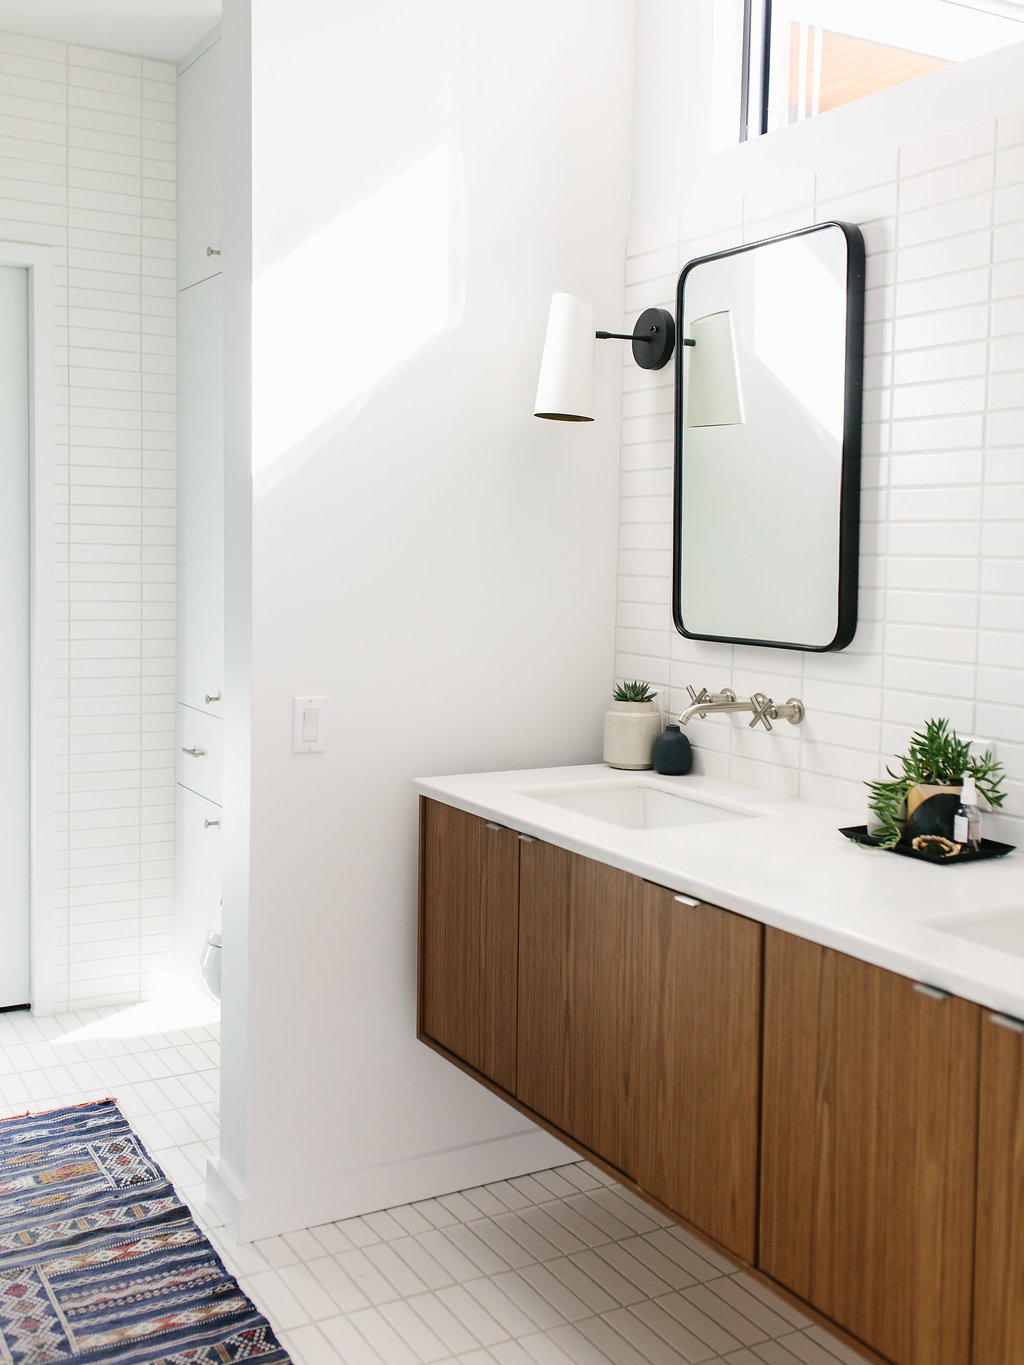 Jen Pinkston's bathroom features our 2x8 Tiles in Sugar